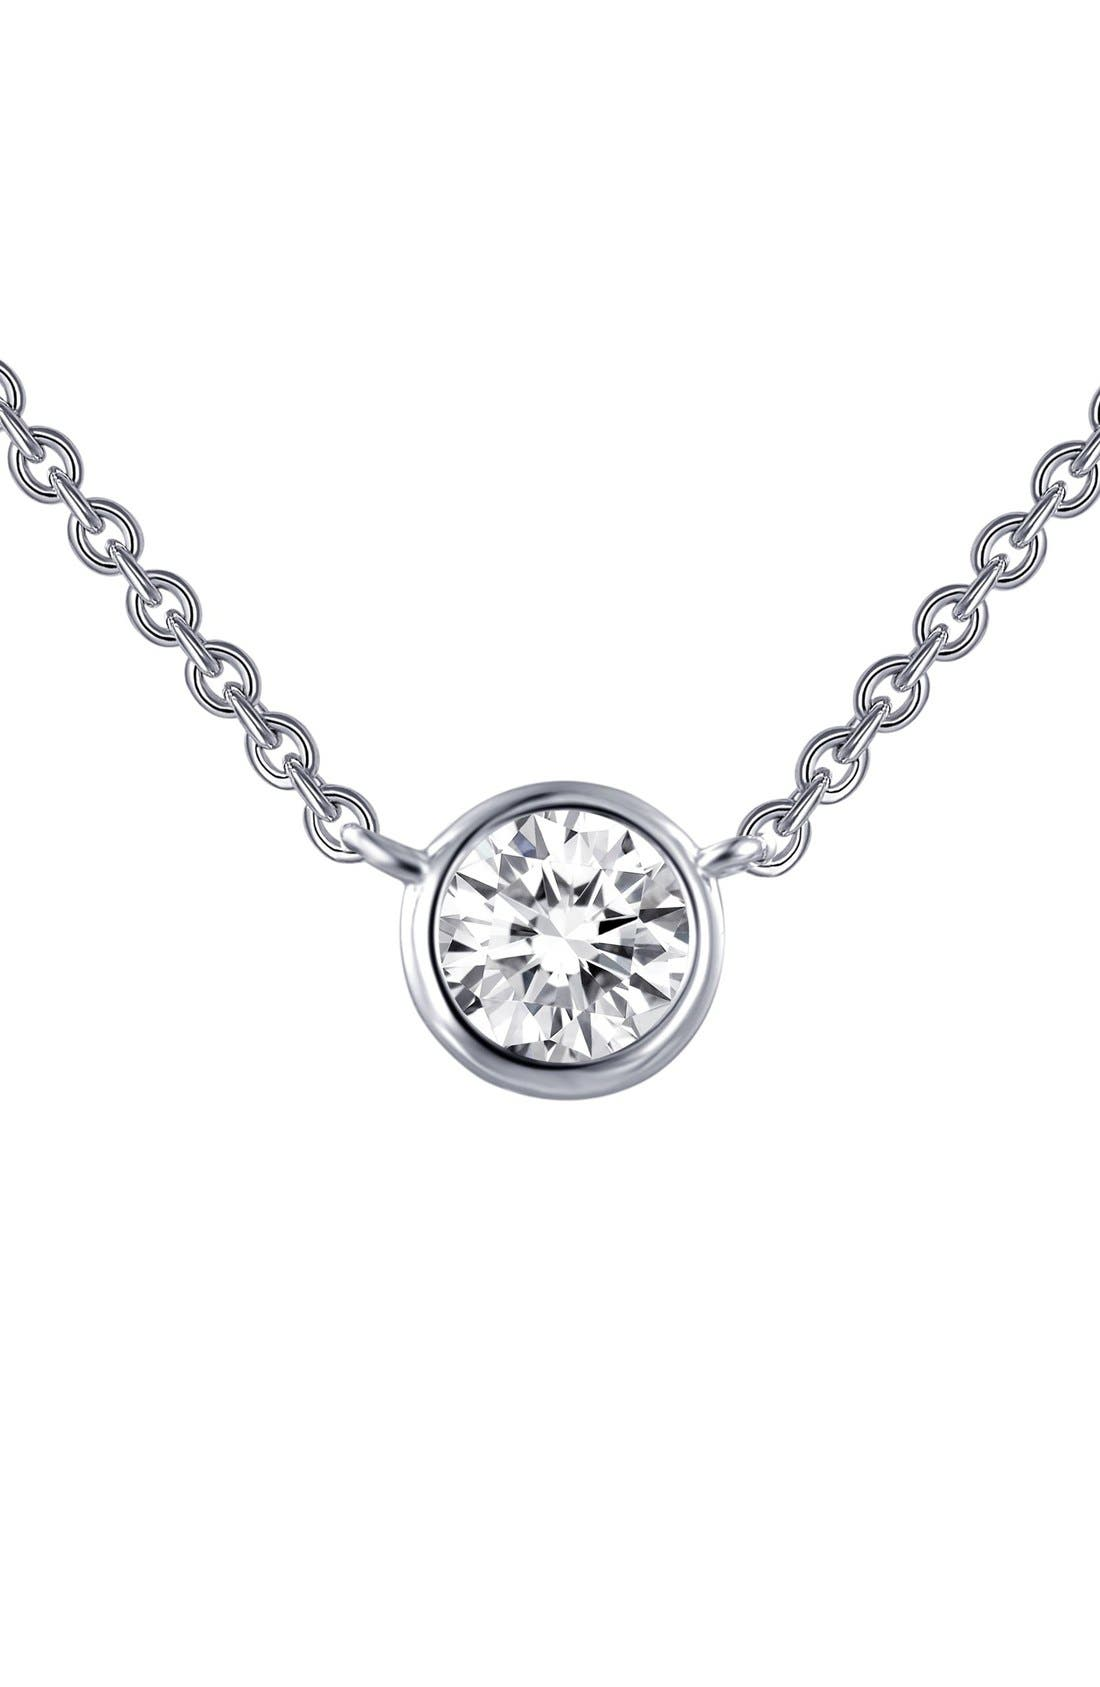 Simulated Diamond Pendant Necklace,                             Main thumbnail 1, color,                             Silver/ Clear